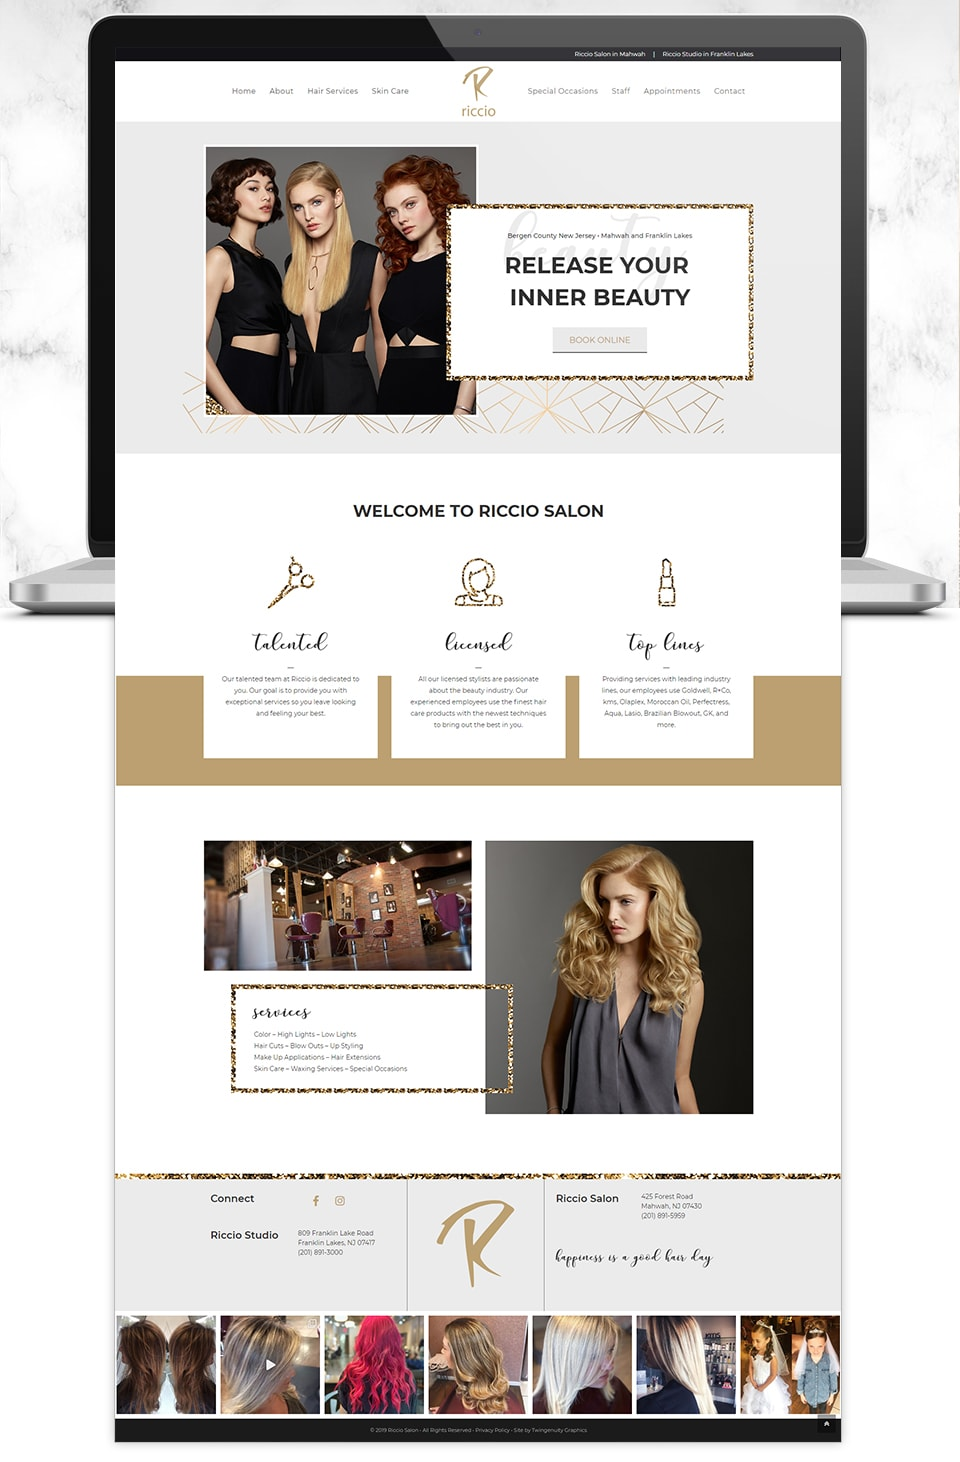 riccio salon website design home page